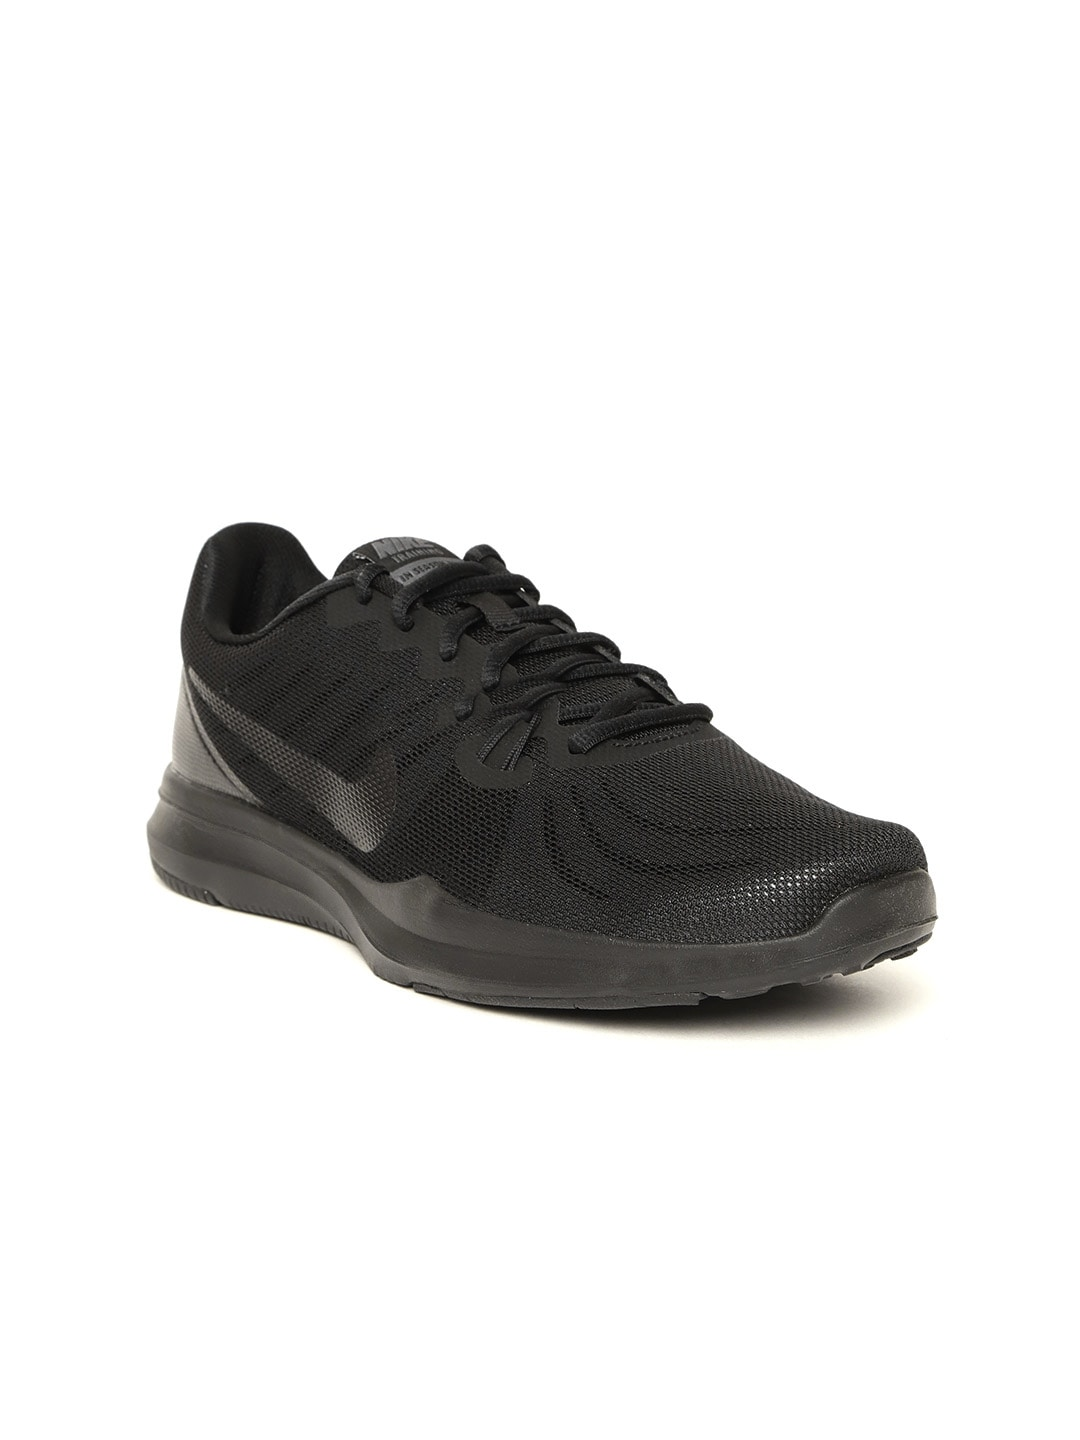 timeless design 7418c 44c80 Nike Shoes - Buy Nike Shoes for Men, Women   Kids Online   Myntra